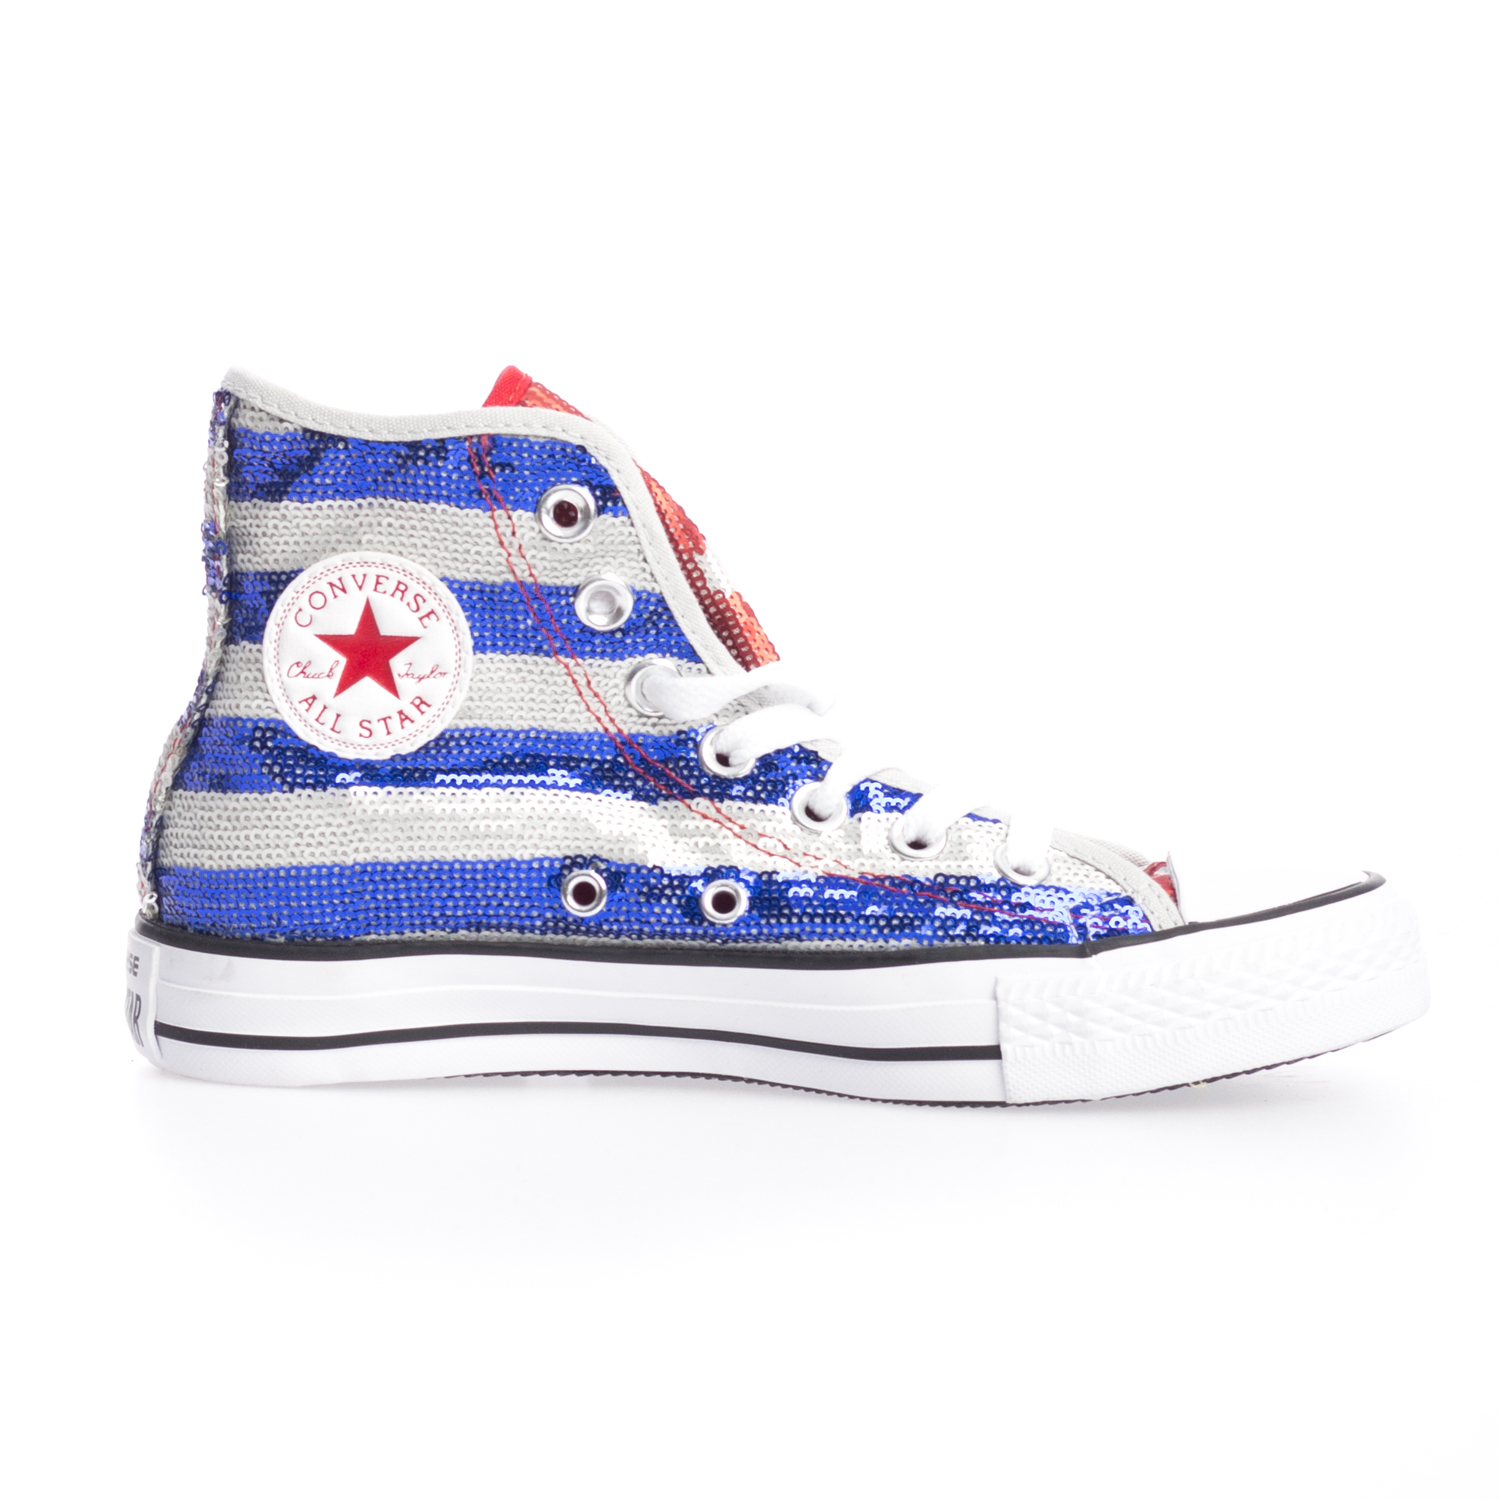 Details about Converse Womens Chuck Taylor Hi Top American Flag Sequin Lace Up Trainers